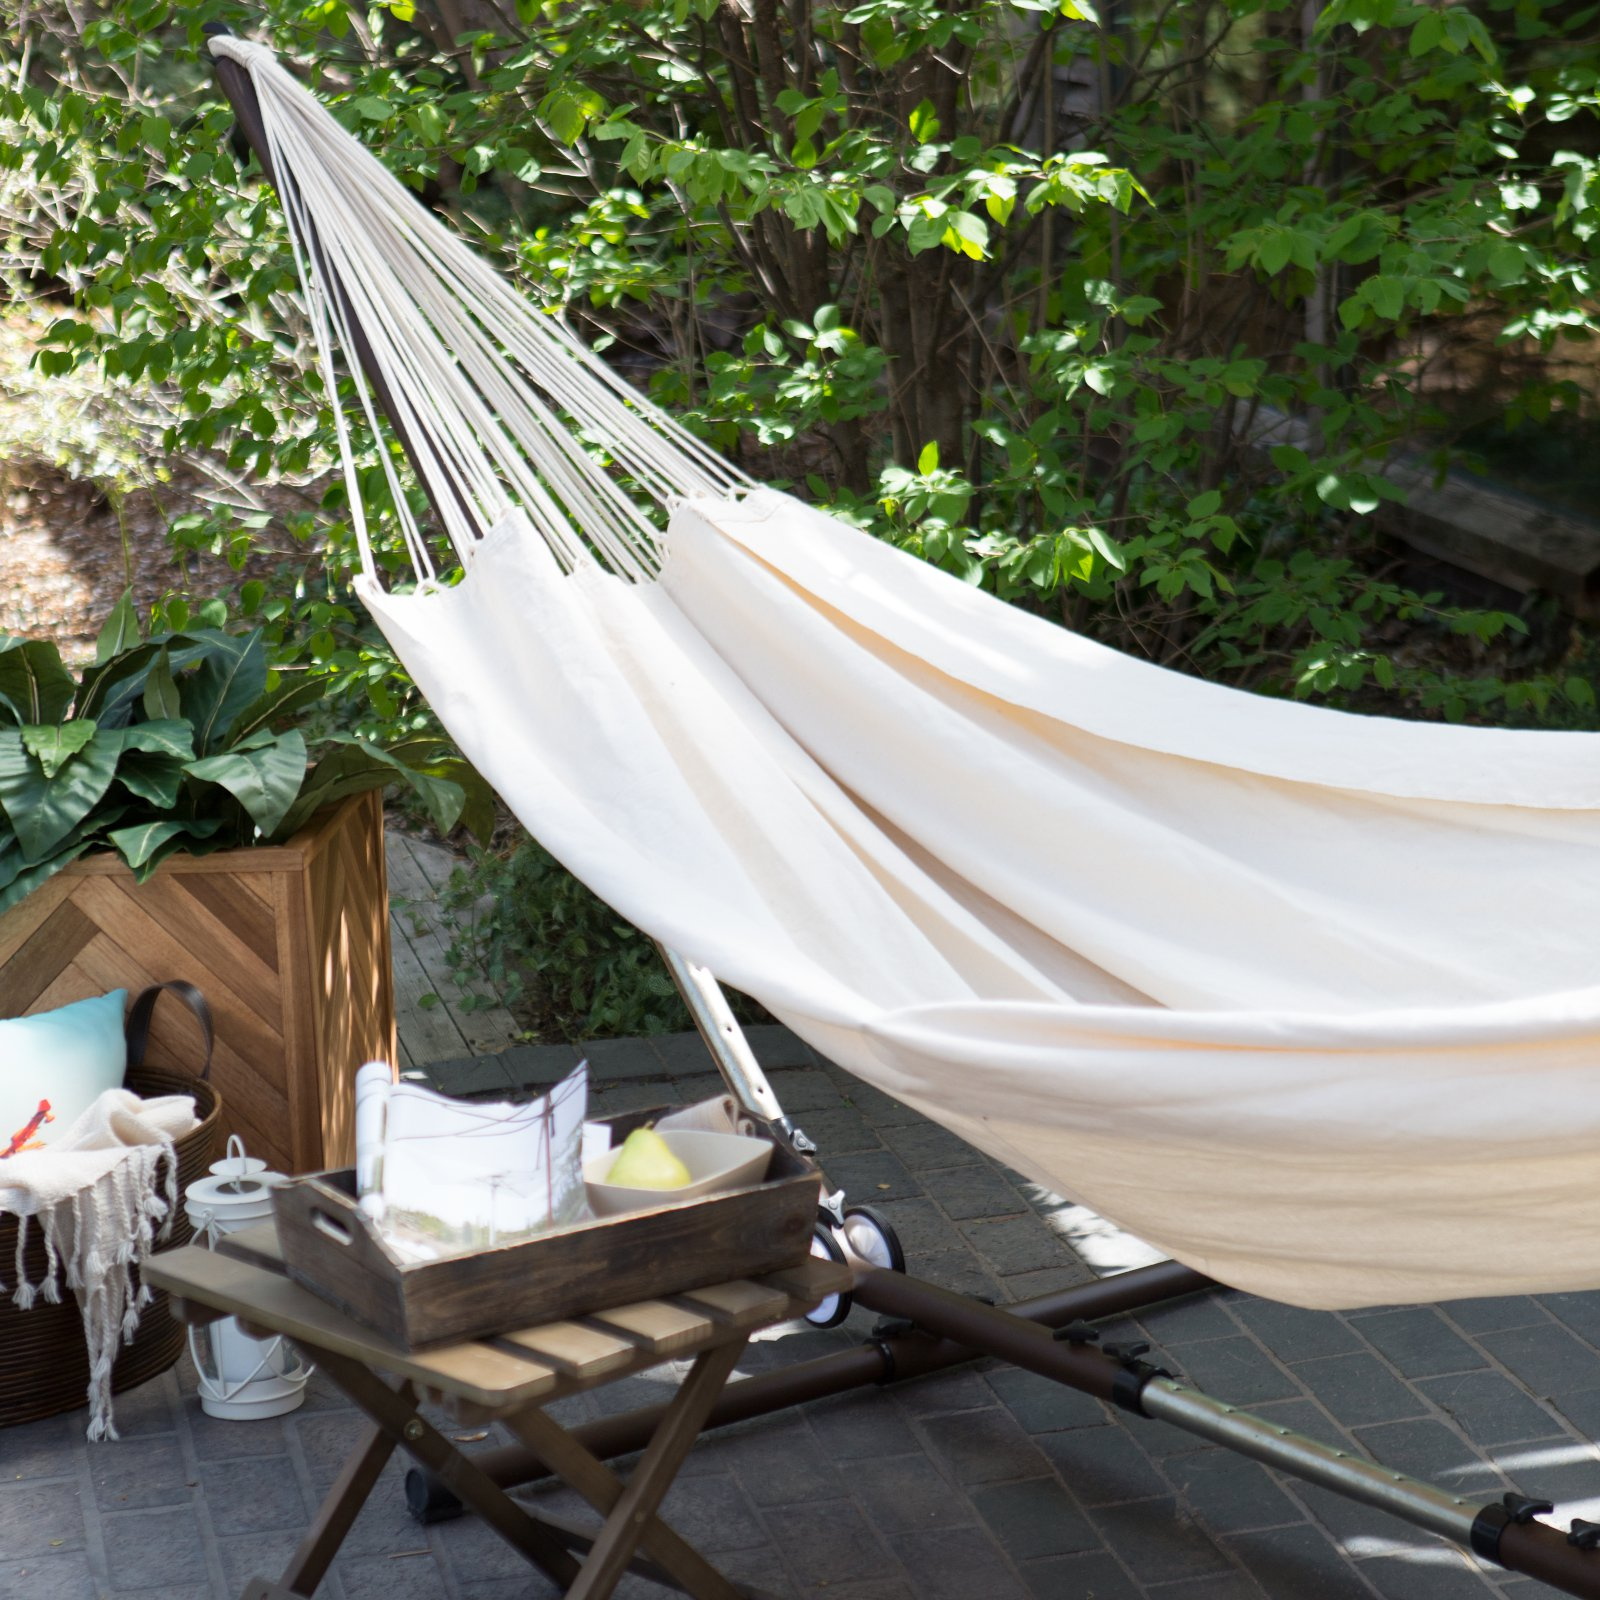 Island Bay XL Natural Brazilian Fabric Double Hammock with Adjustable Stand with Wheels